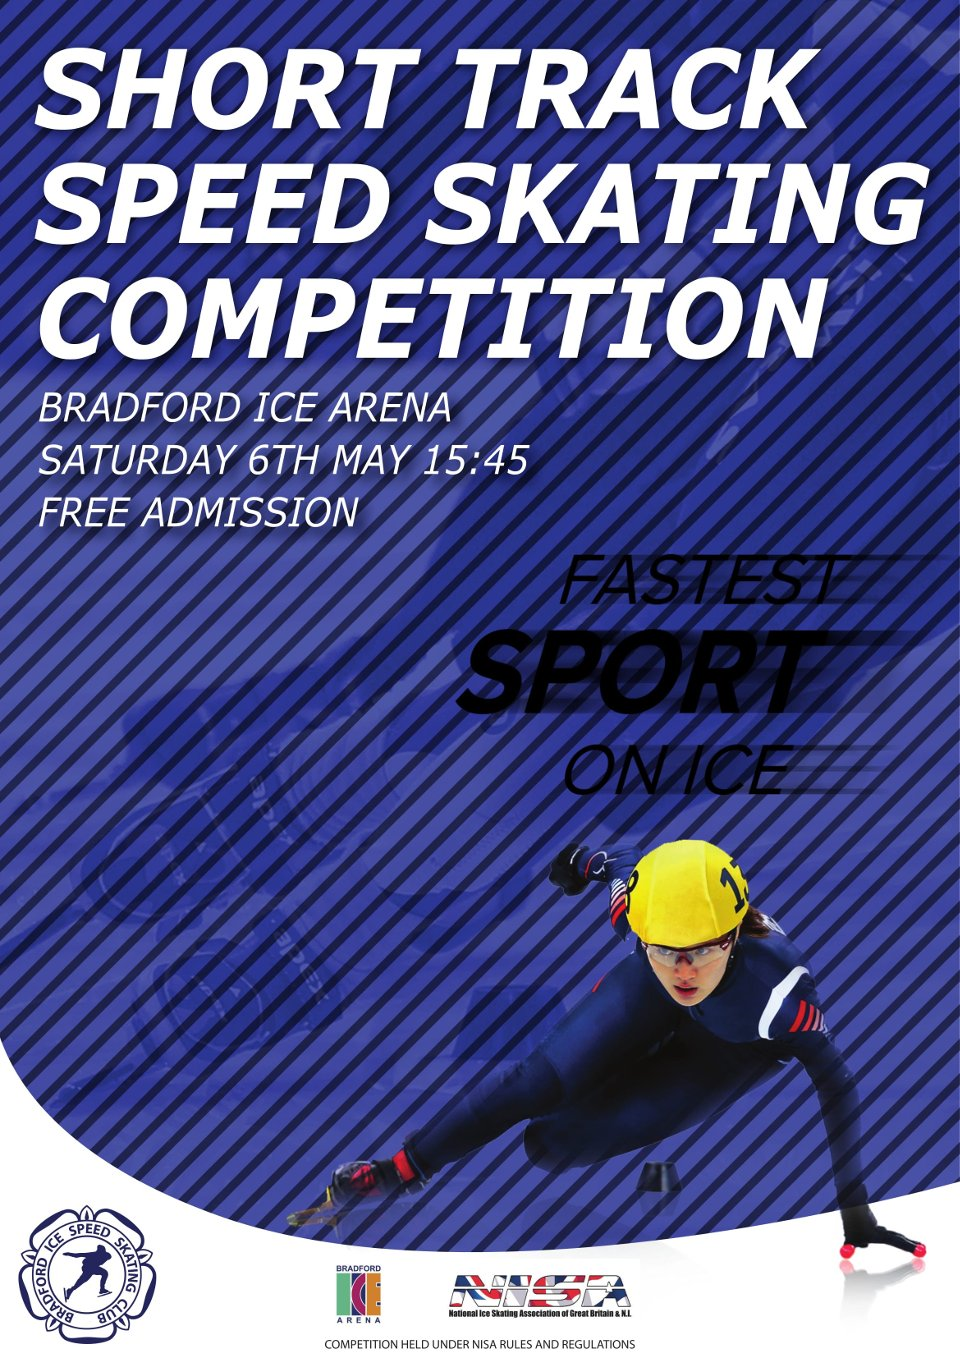 a busy looking flyer featuring a female ice skater